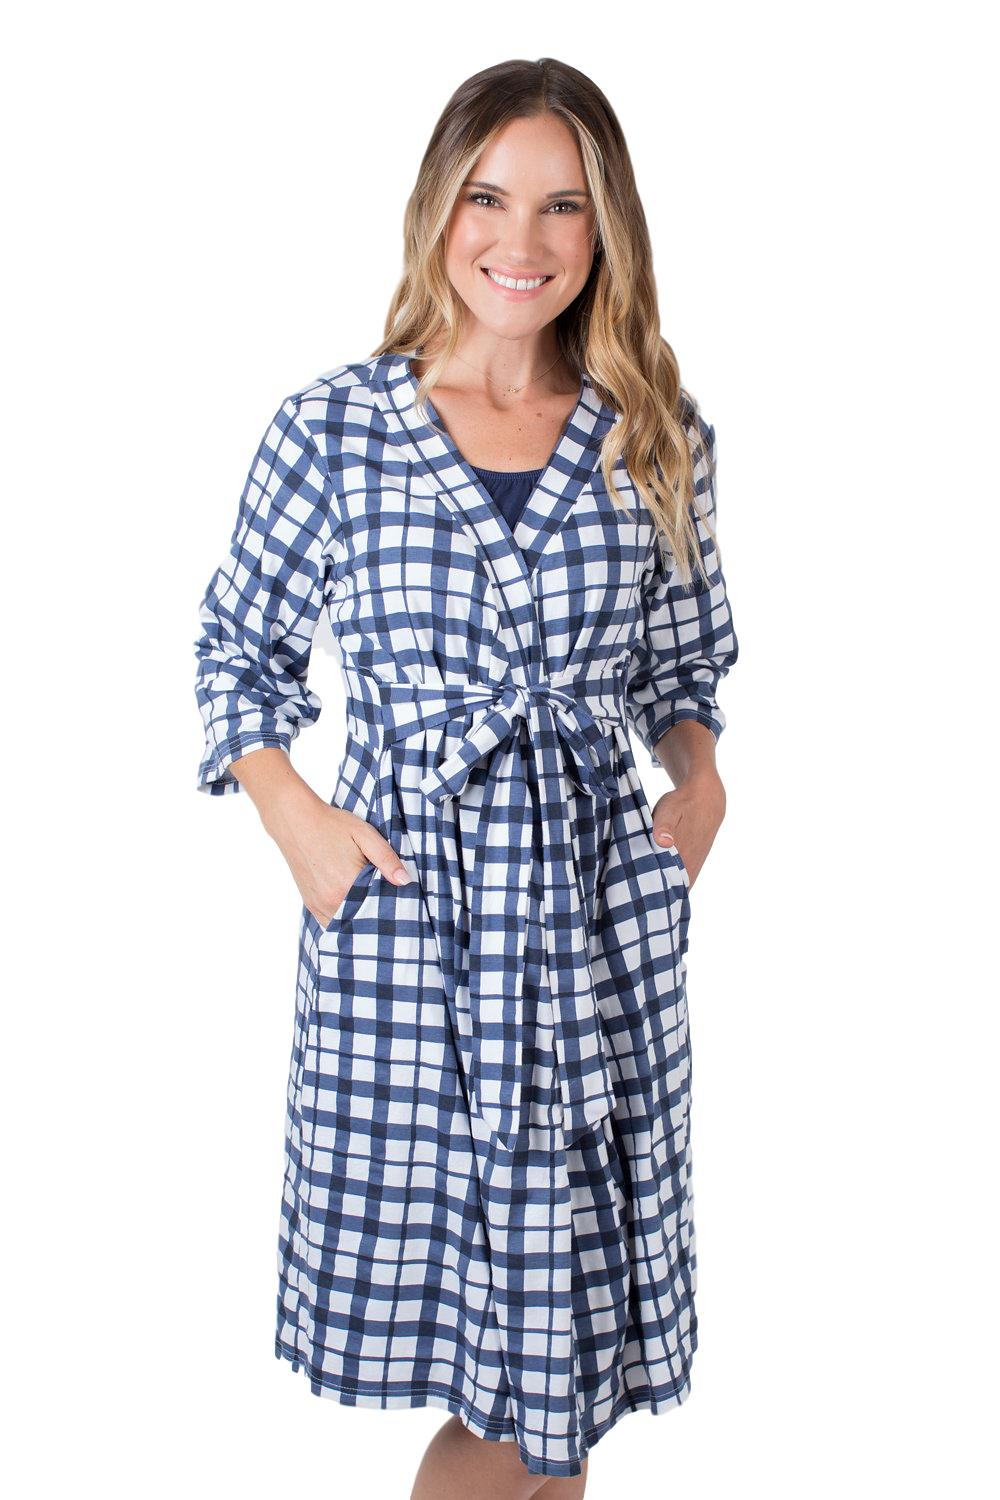 Blue Gingham Maternity Delivery Robe